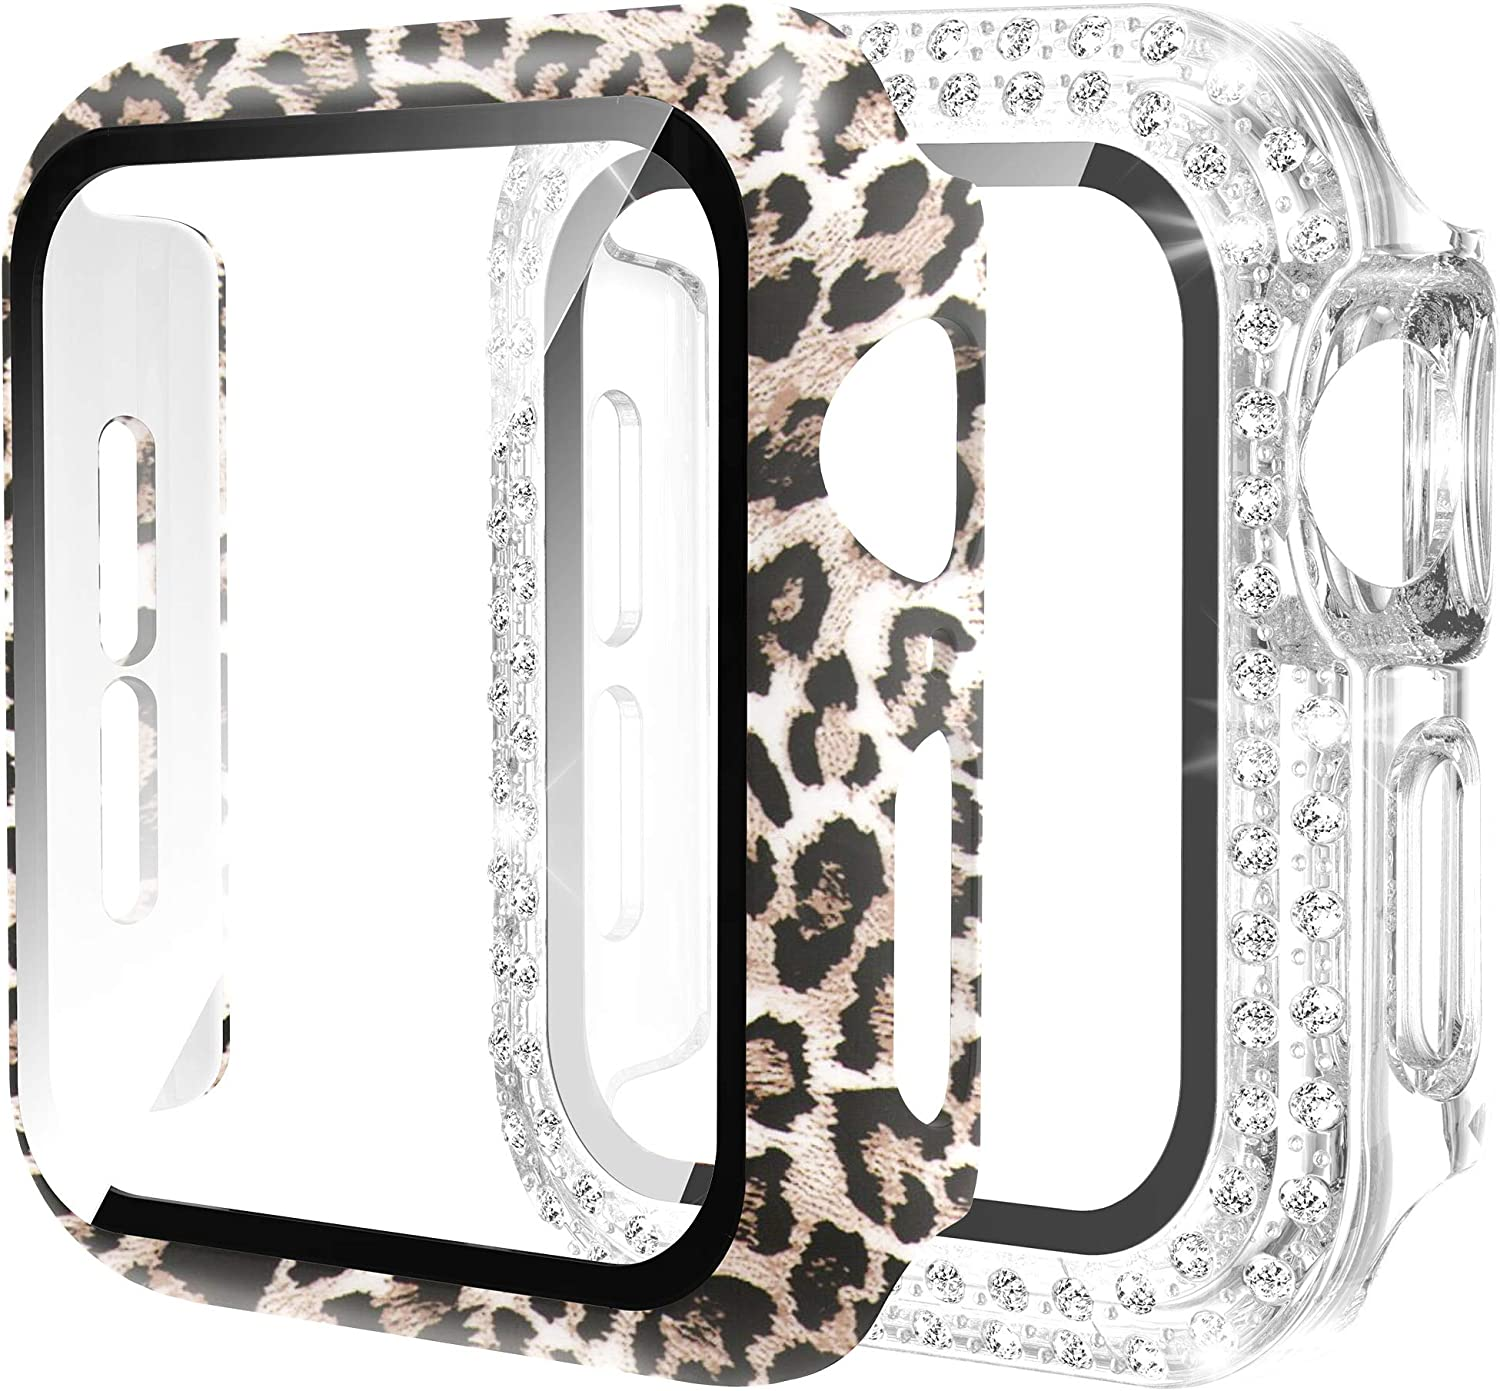 Wearlizer 2 Pack Screen Protector Case Compatible with Apple Watch 44mm Series 6 SE 5 4, Ultra-Thin Bling Diamond Full Cover Protective Bumper Case for iWatch Women Girls (Leopard+Clear Diamond, 44mm)